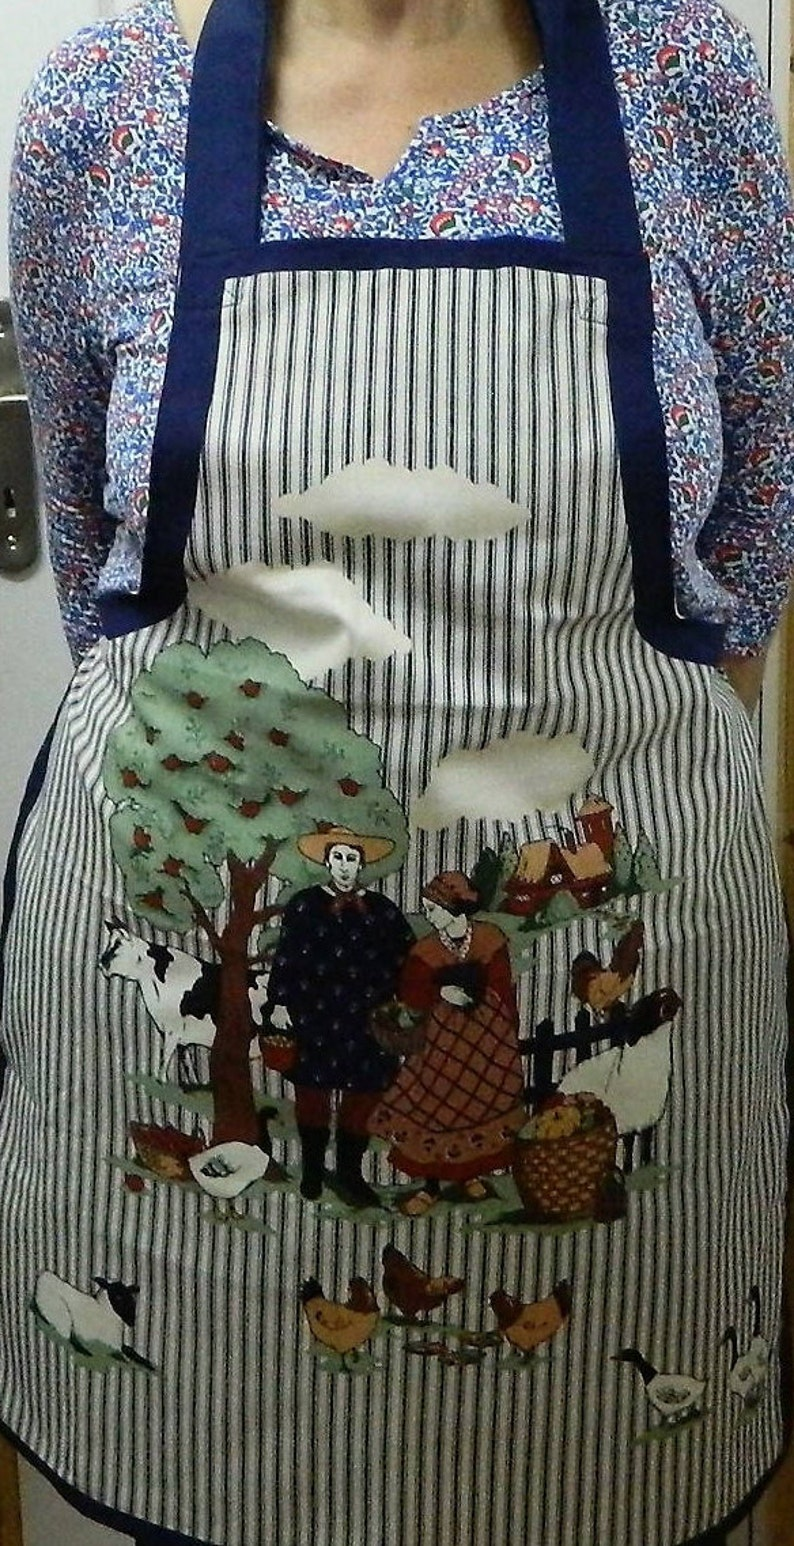 fabric apron chefs apron womens aprons cooking apron kitchen apron womens clothing chickens food apron womens gift aprons for women